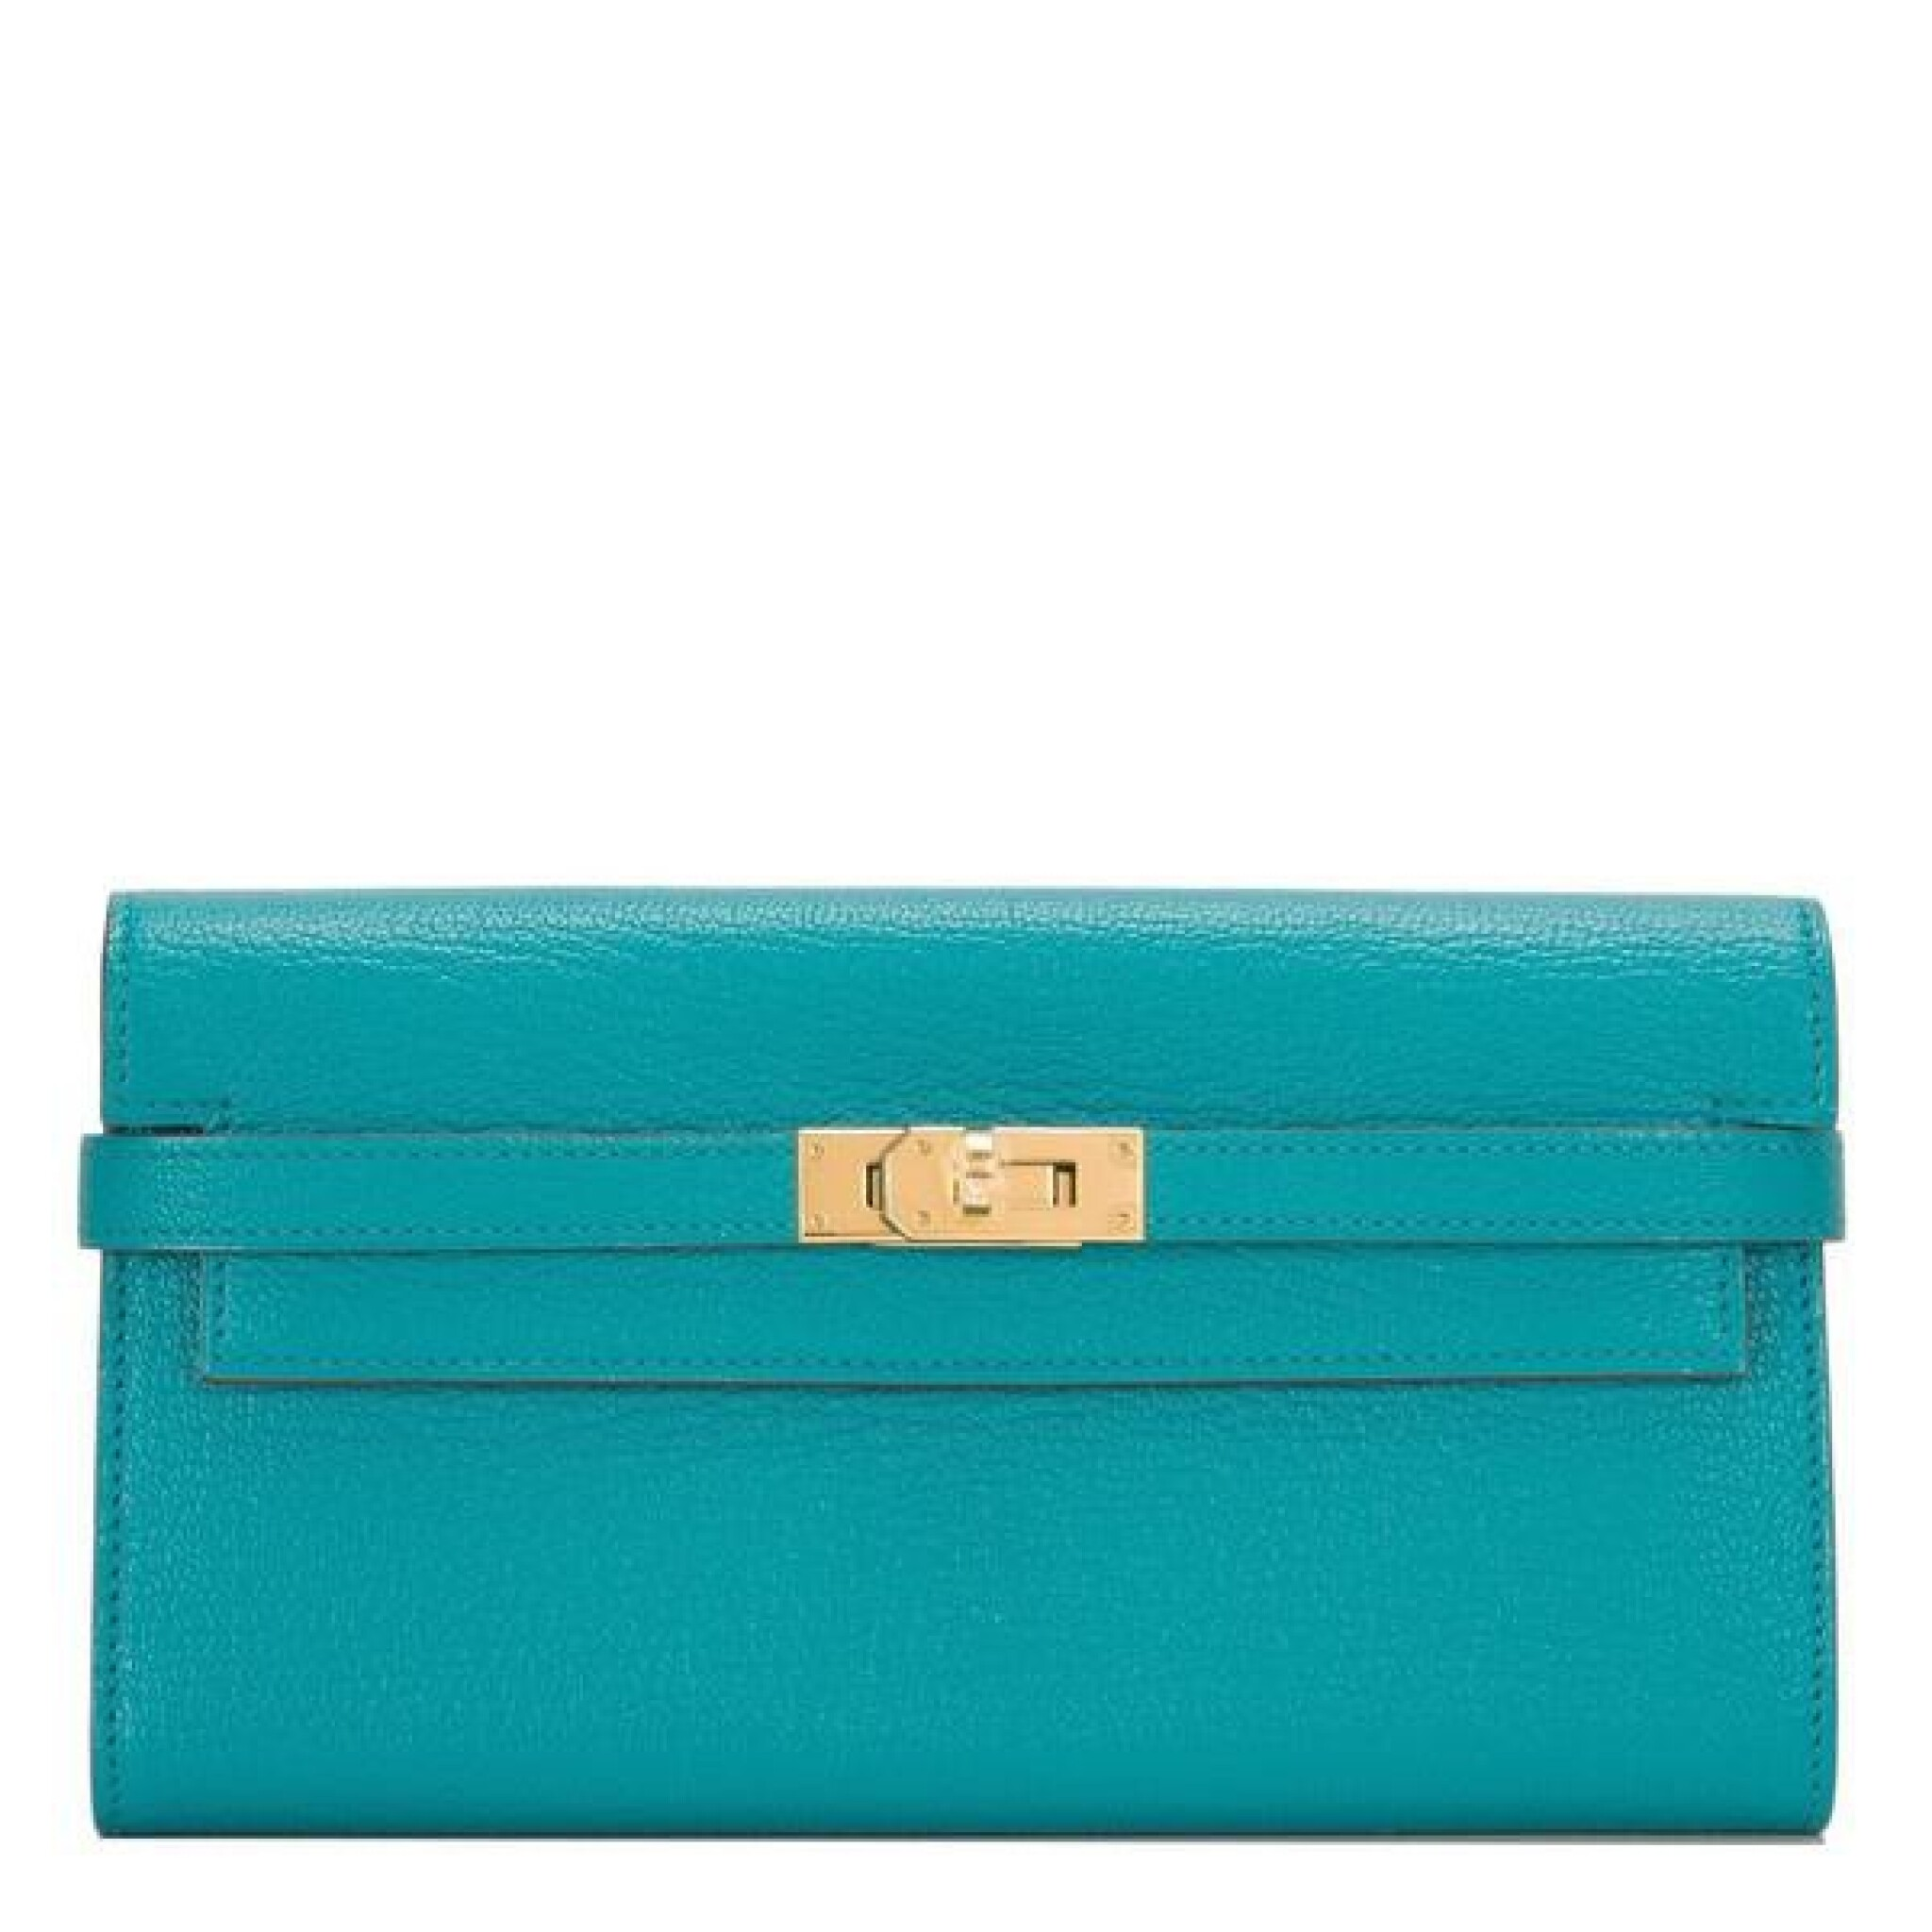 View full screen - View 1 of Lot 23. Hermès Blue Paon Chevre Leather Kelly Longue Wallet.